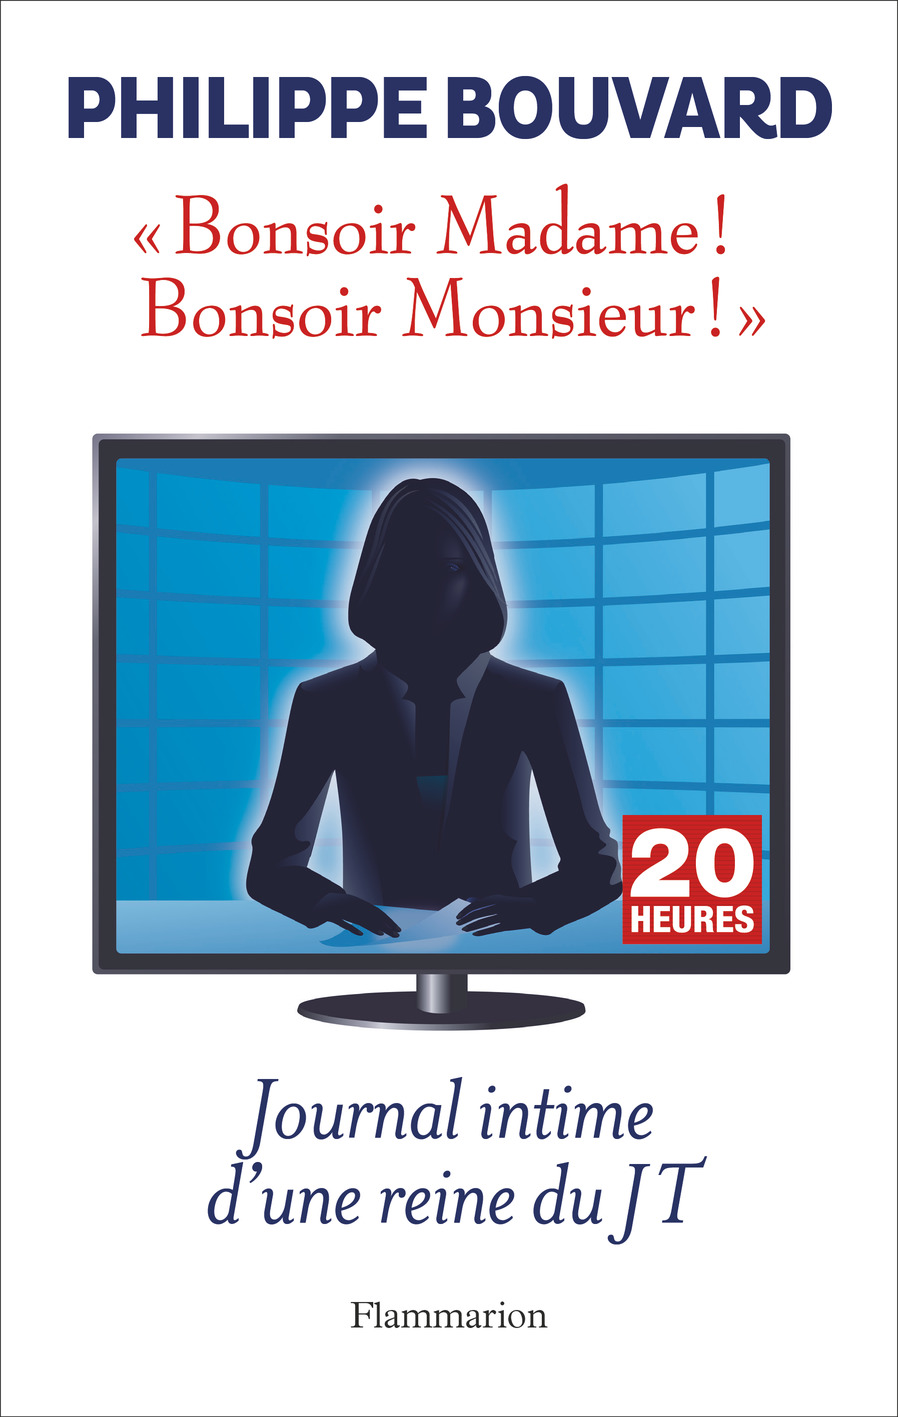 Bonsoir Madame ! Bonsoir Monsieur ! Journal intime d'une reine du JT